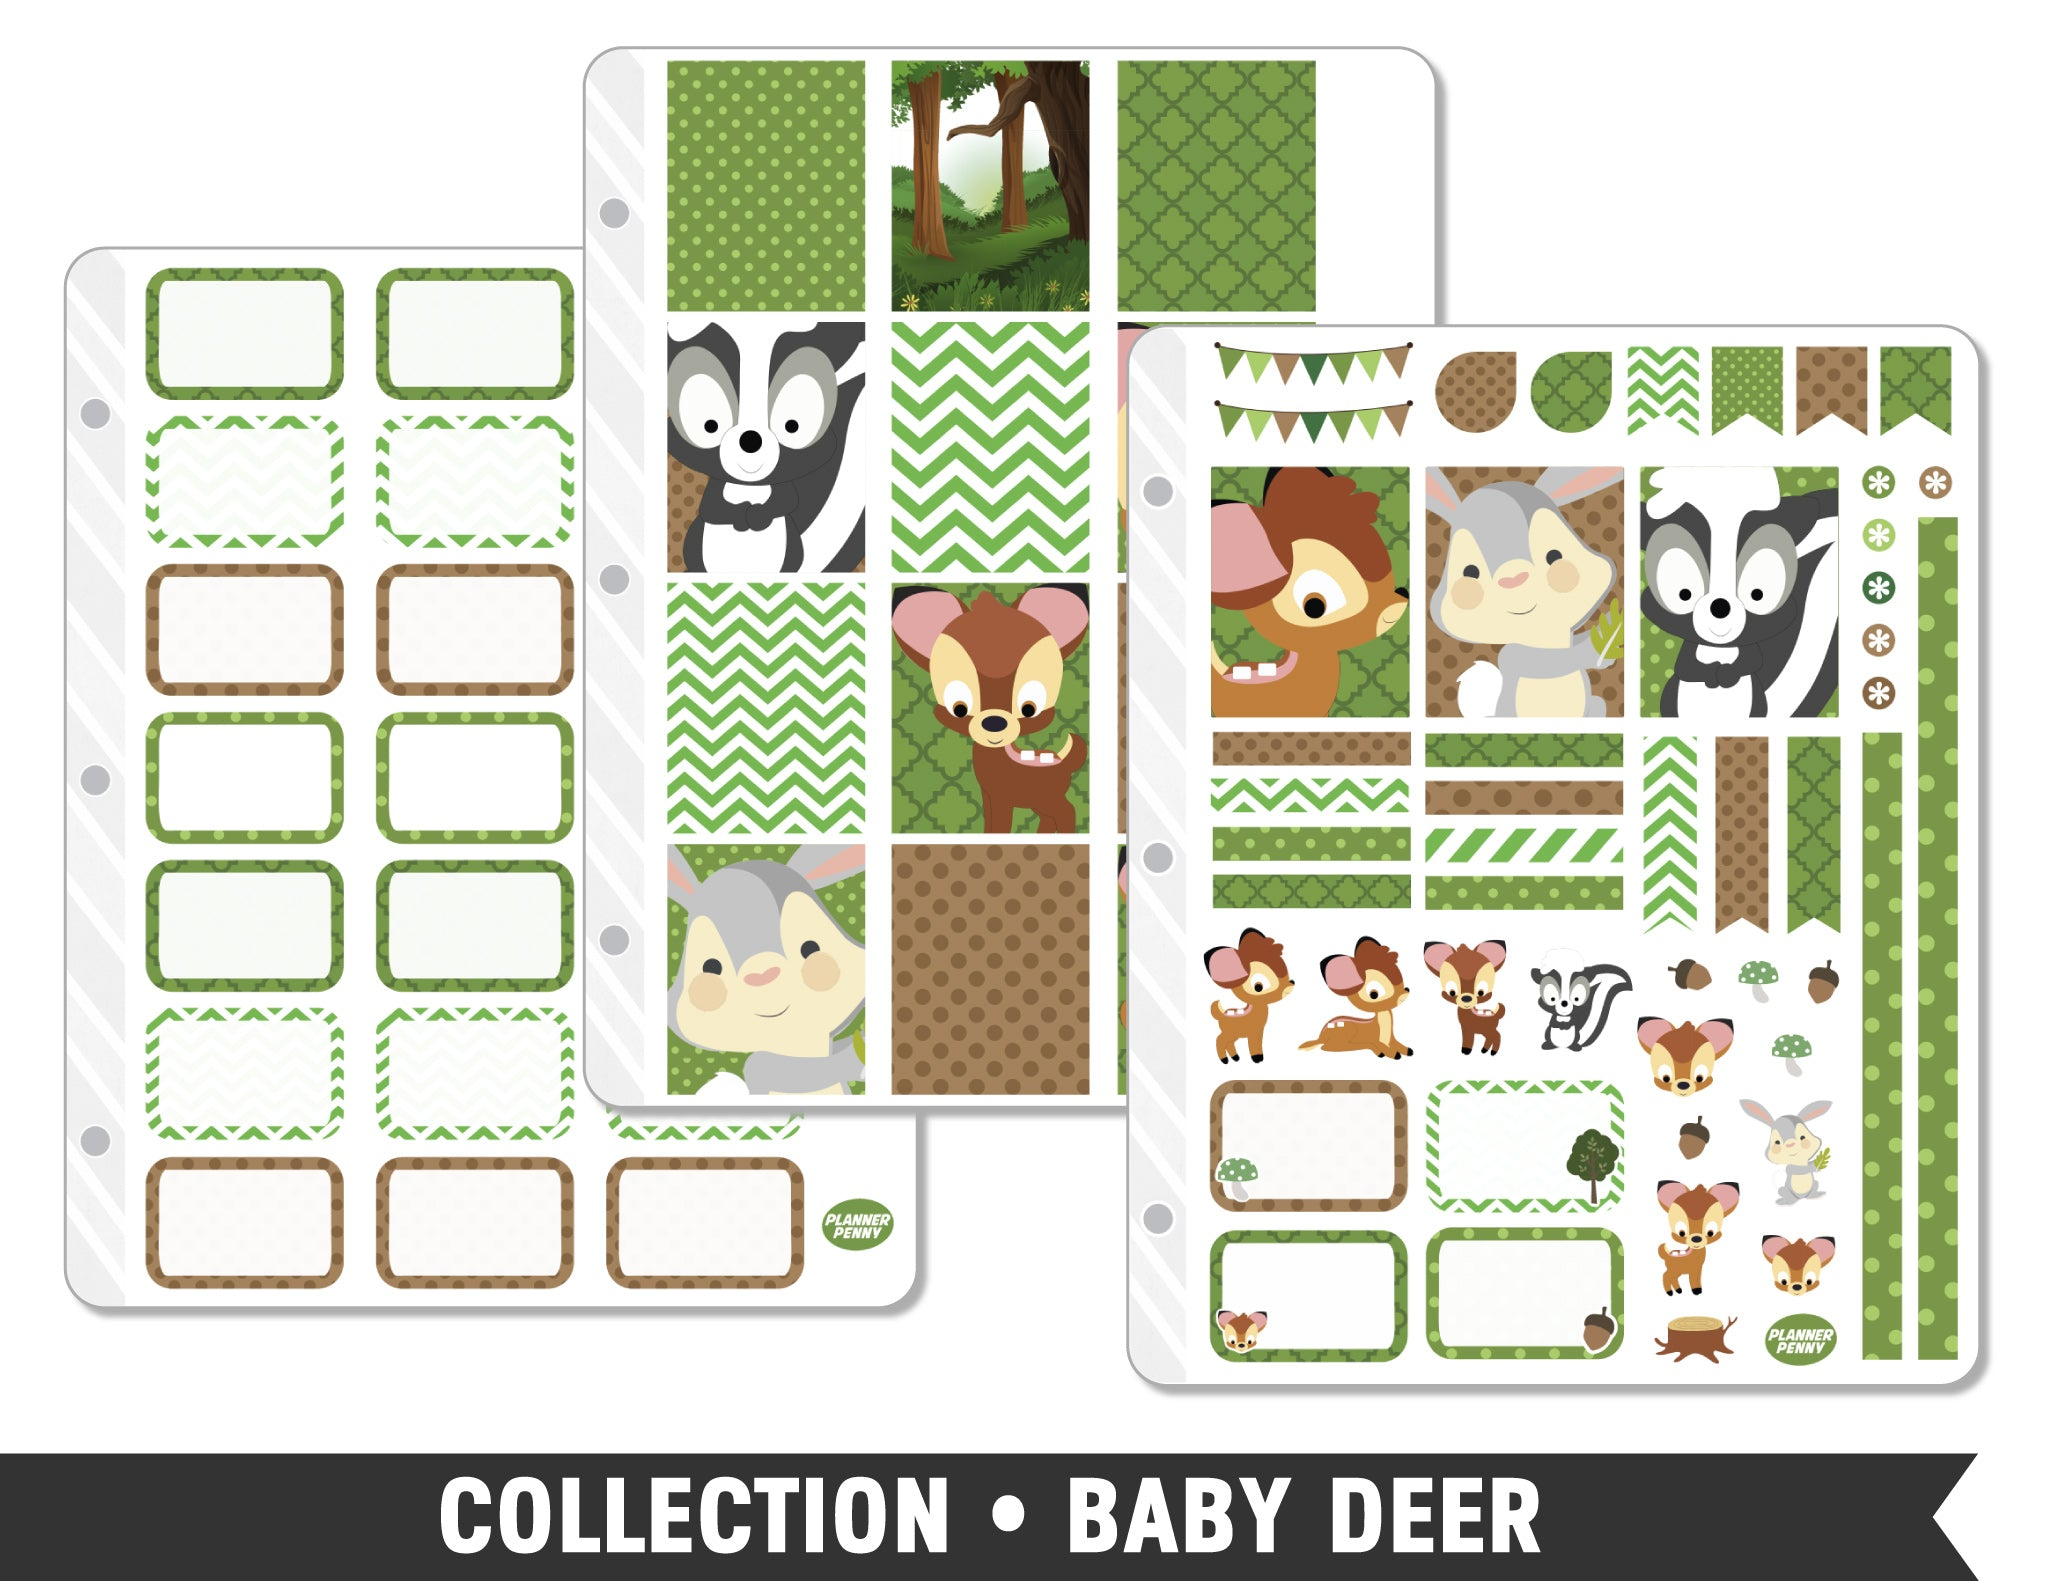 Collection • Baby Deer Planner Stickers - Planner Penny